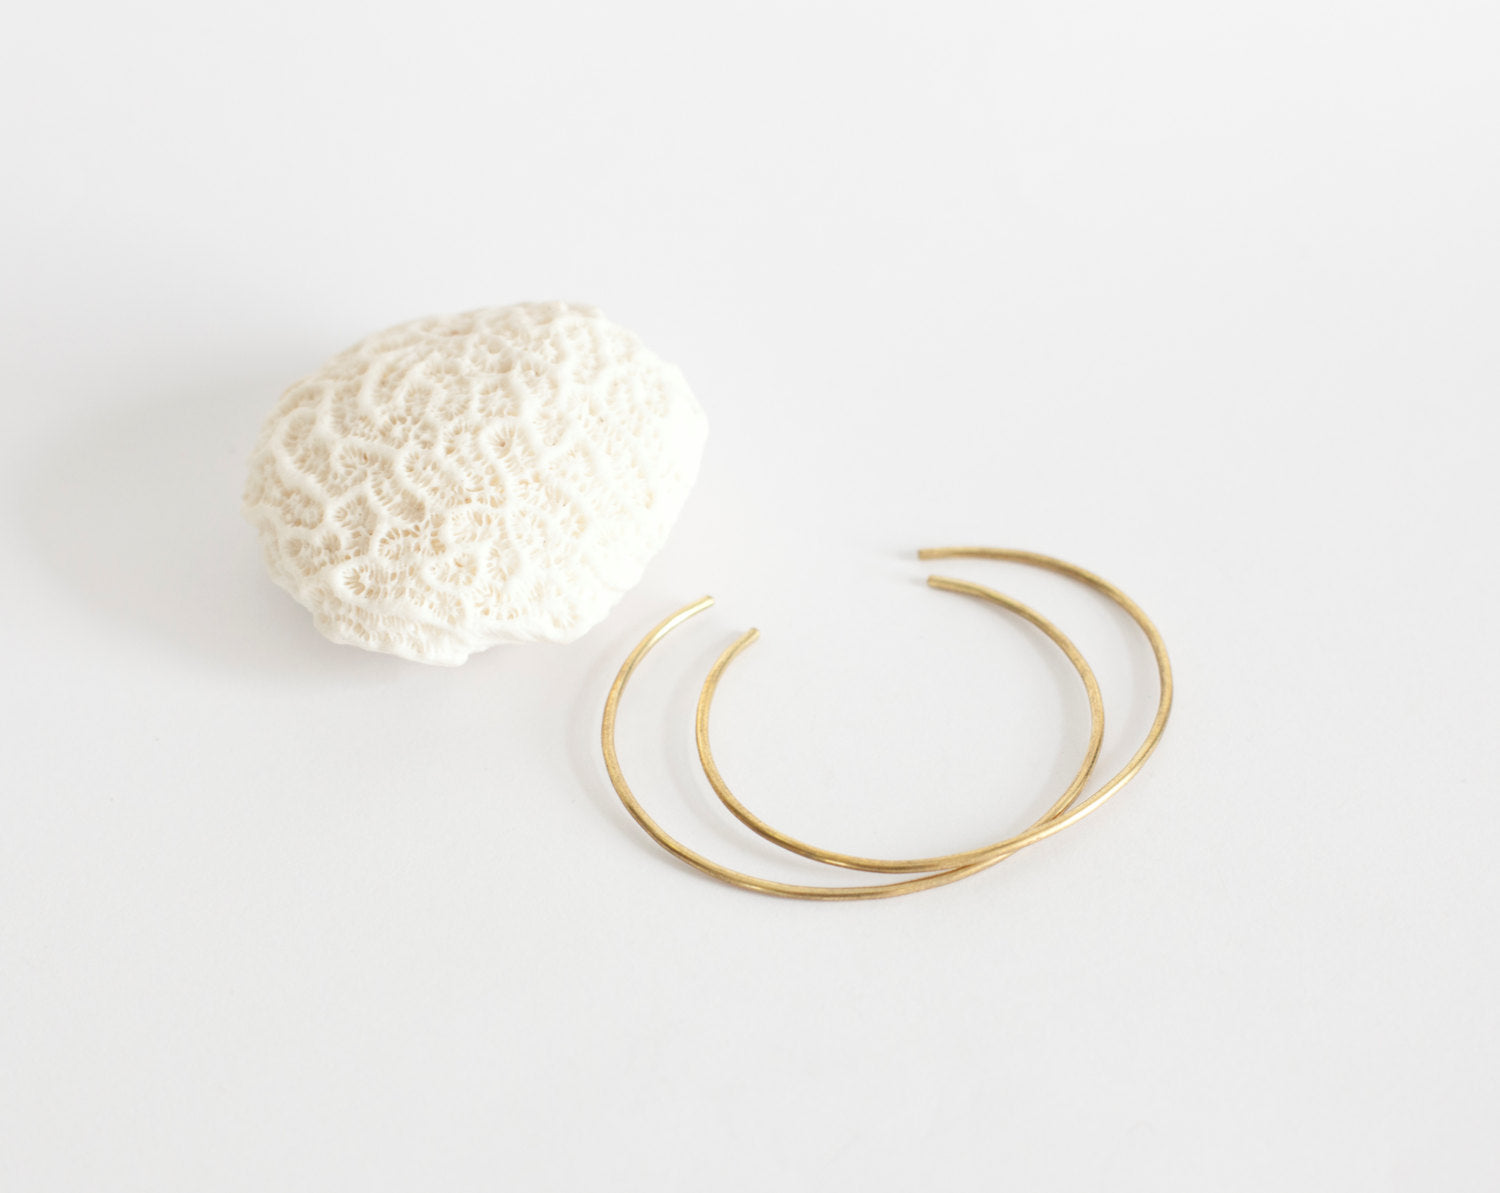 Set of 2 thin brass cuff bracelets